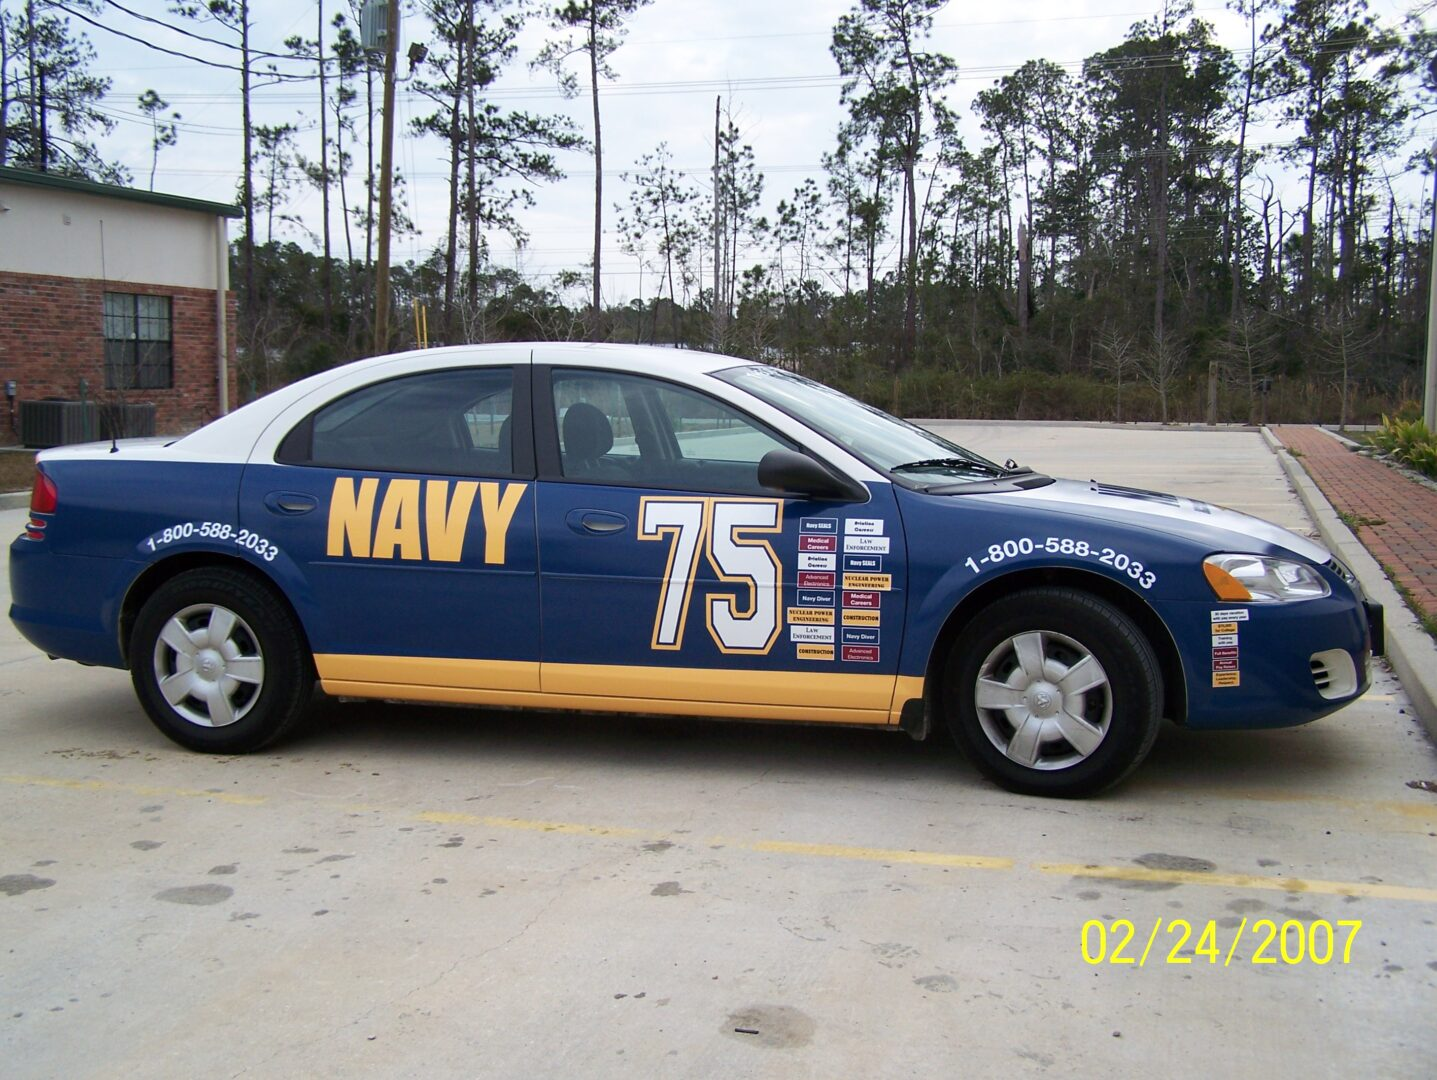 Fleet Graphics in Slidell, LA